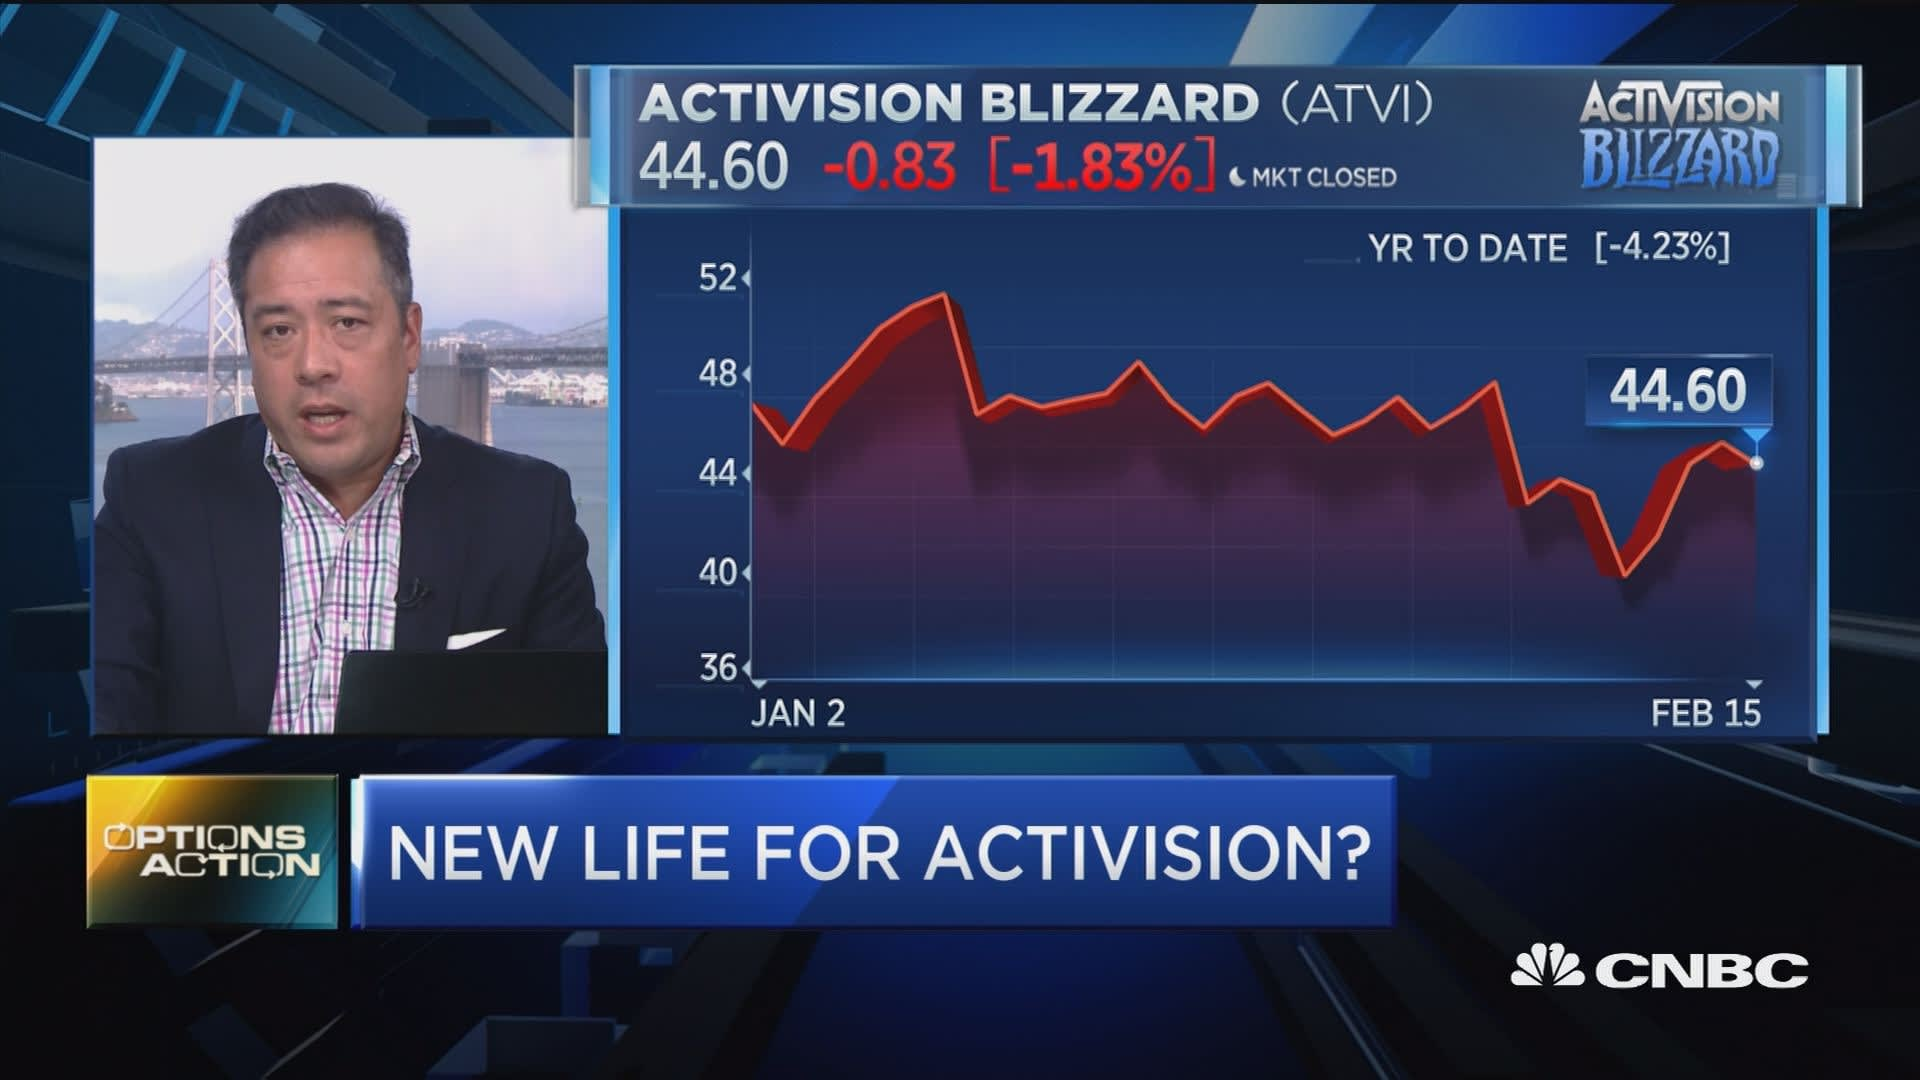 Activision Blizzard's esports marketing chief: We want brands to help us build Overwatch League